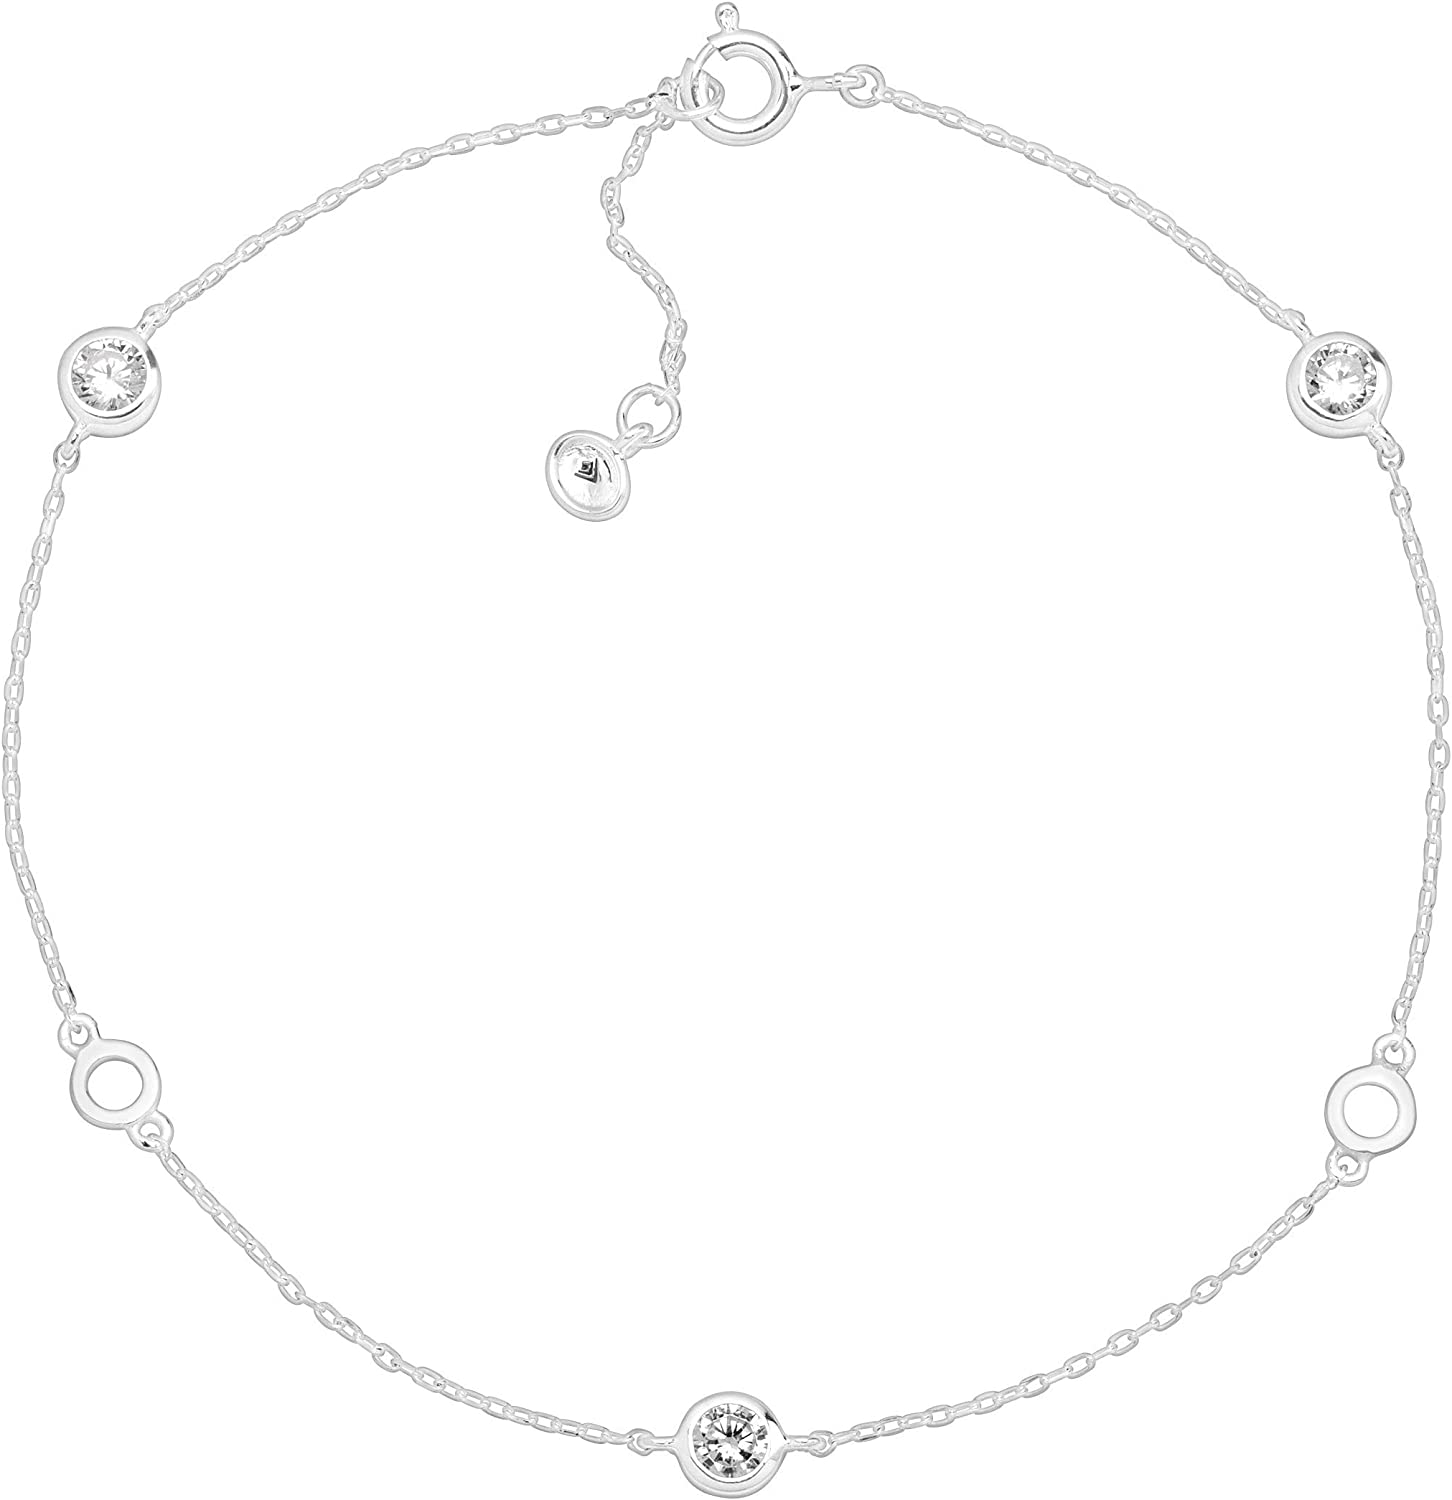 Silpada Clarity Serenity Anklet with Cubic Zirconia in Sterling Silver 9 1